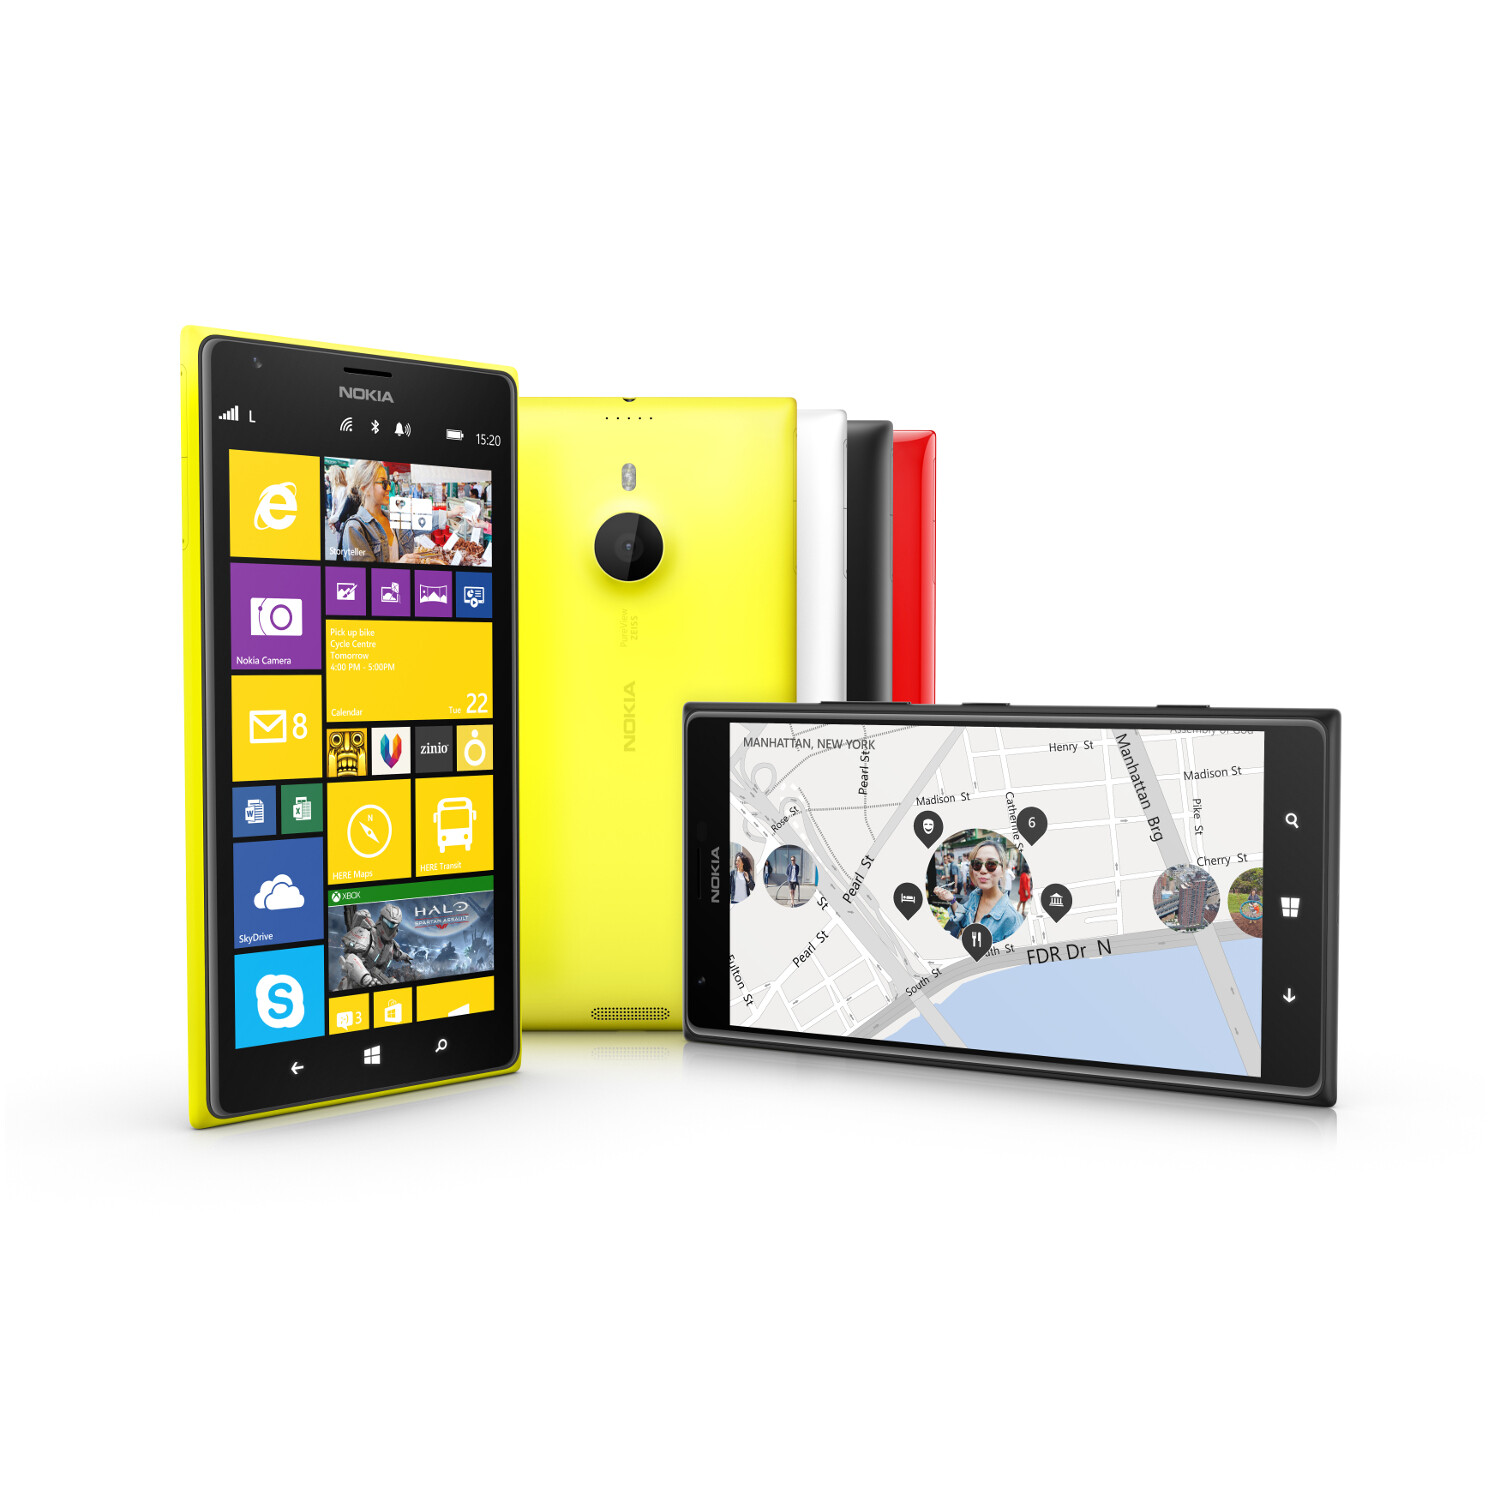 First Nokia phablet